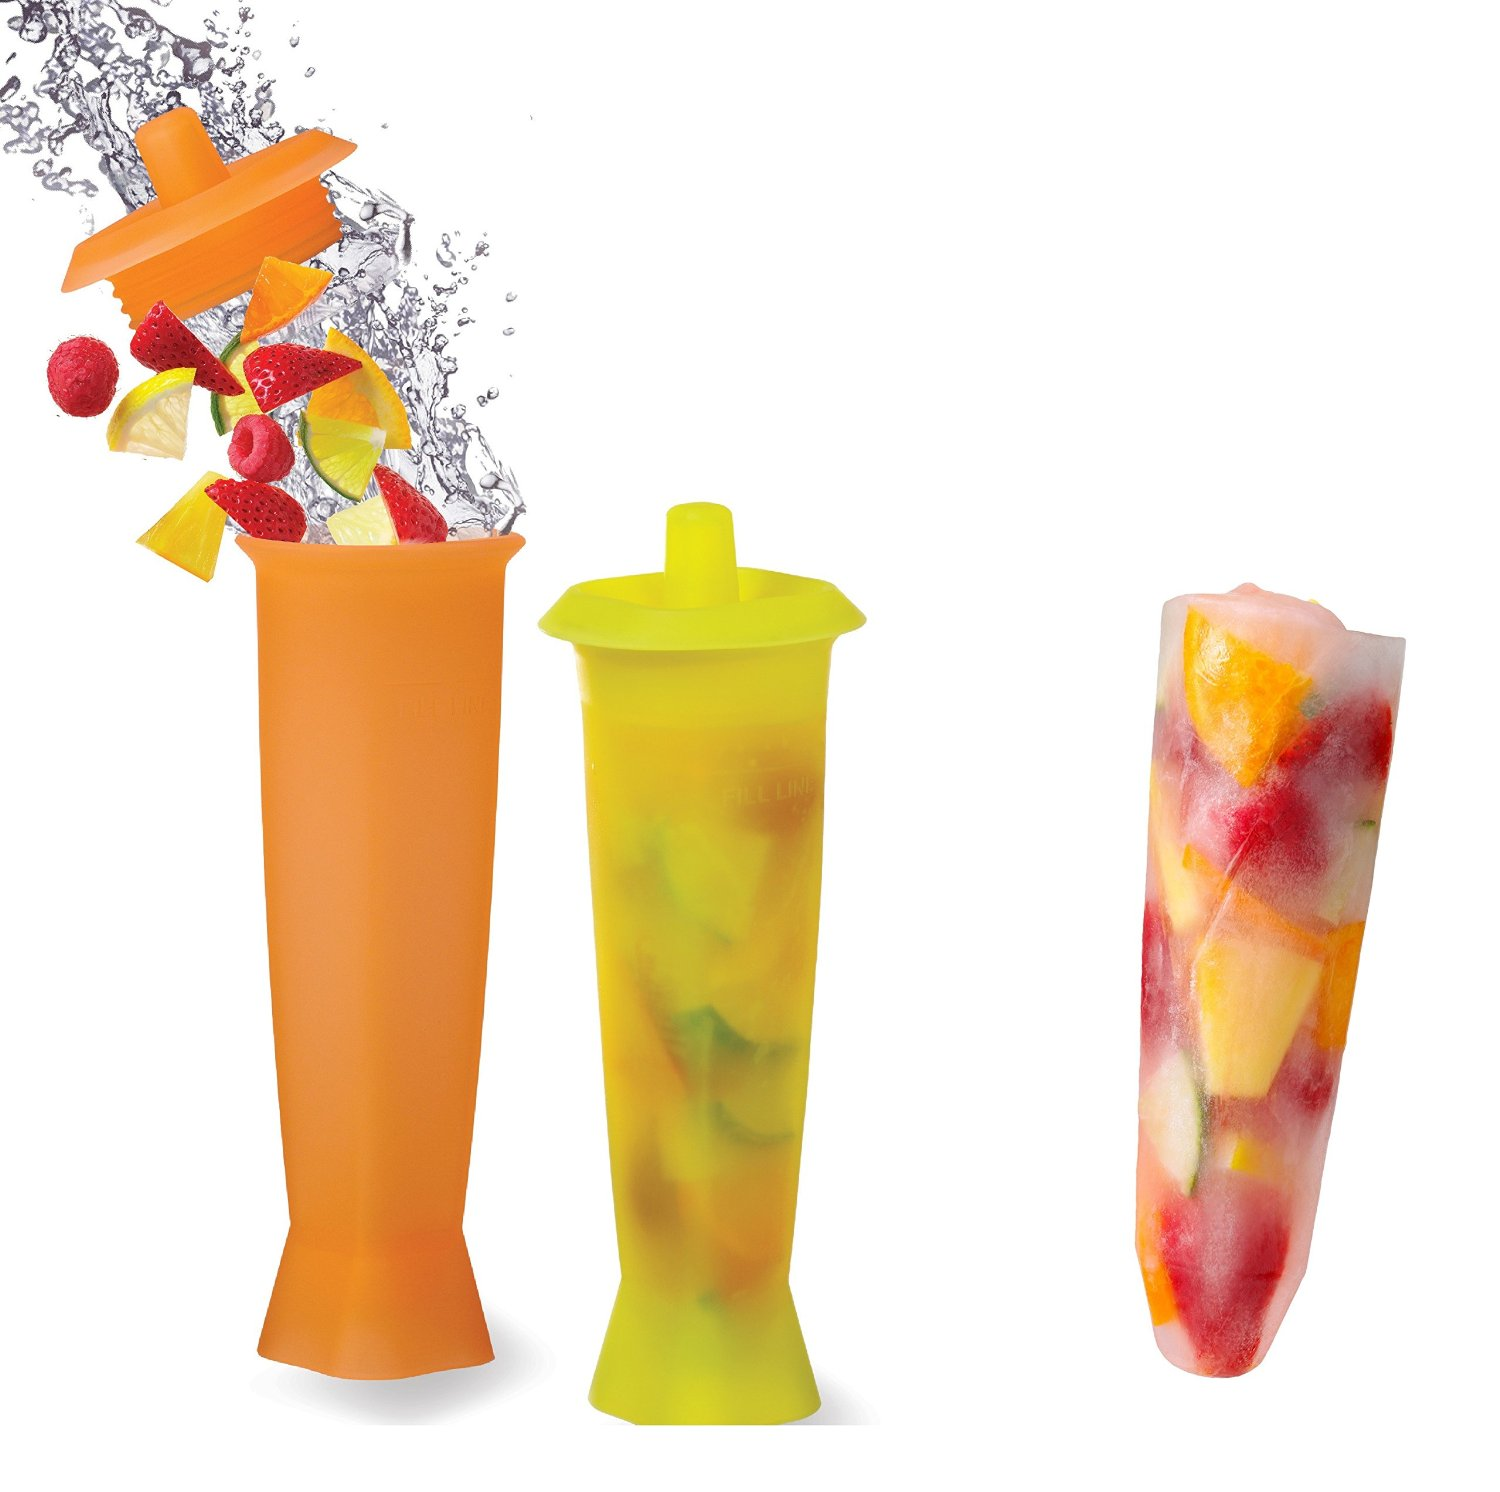 PRODYNE FI8 FRUIT INFUSION ICE MOLDS SET OF 2 EASY TO PREPARE